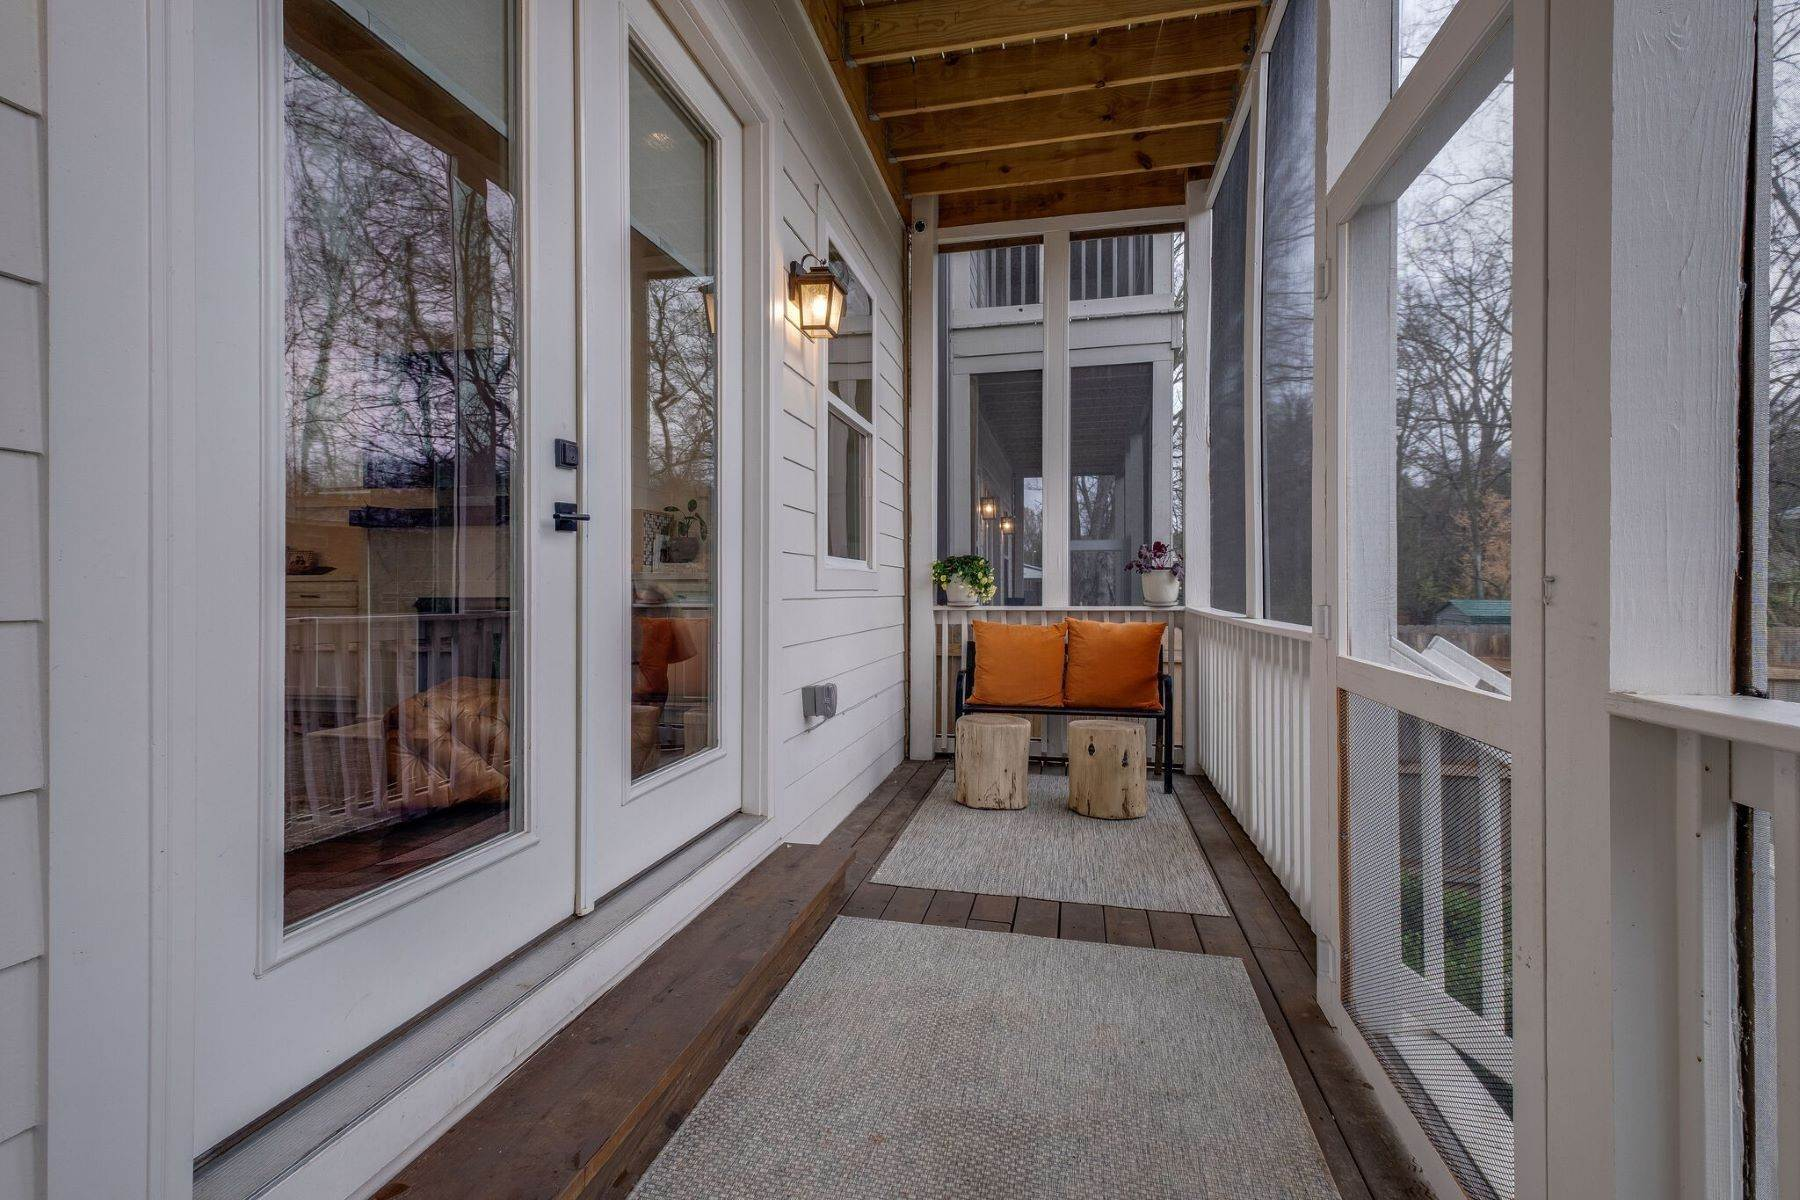 28. Single Family Homes for Sale at 408 Scott Avenue, Nashville, TN 37206 408 Scott Avenue, #A Nashville, Tennessee 37206 United States